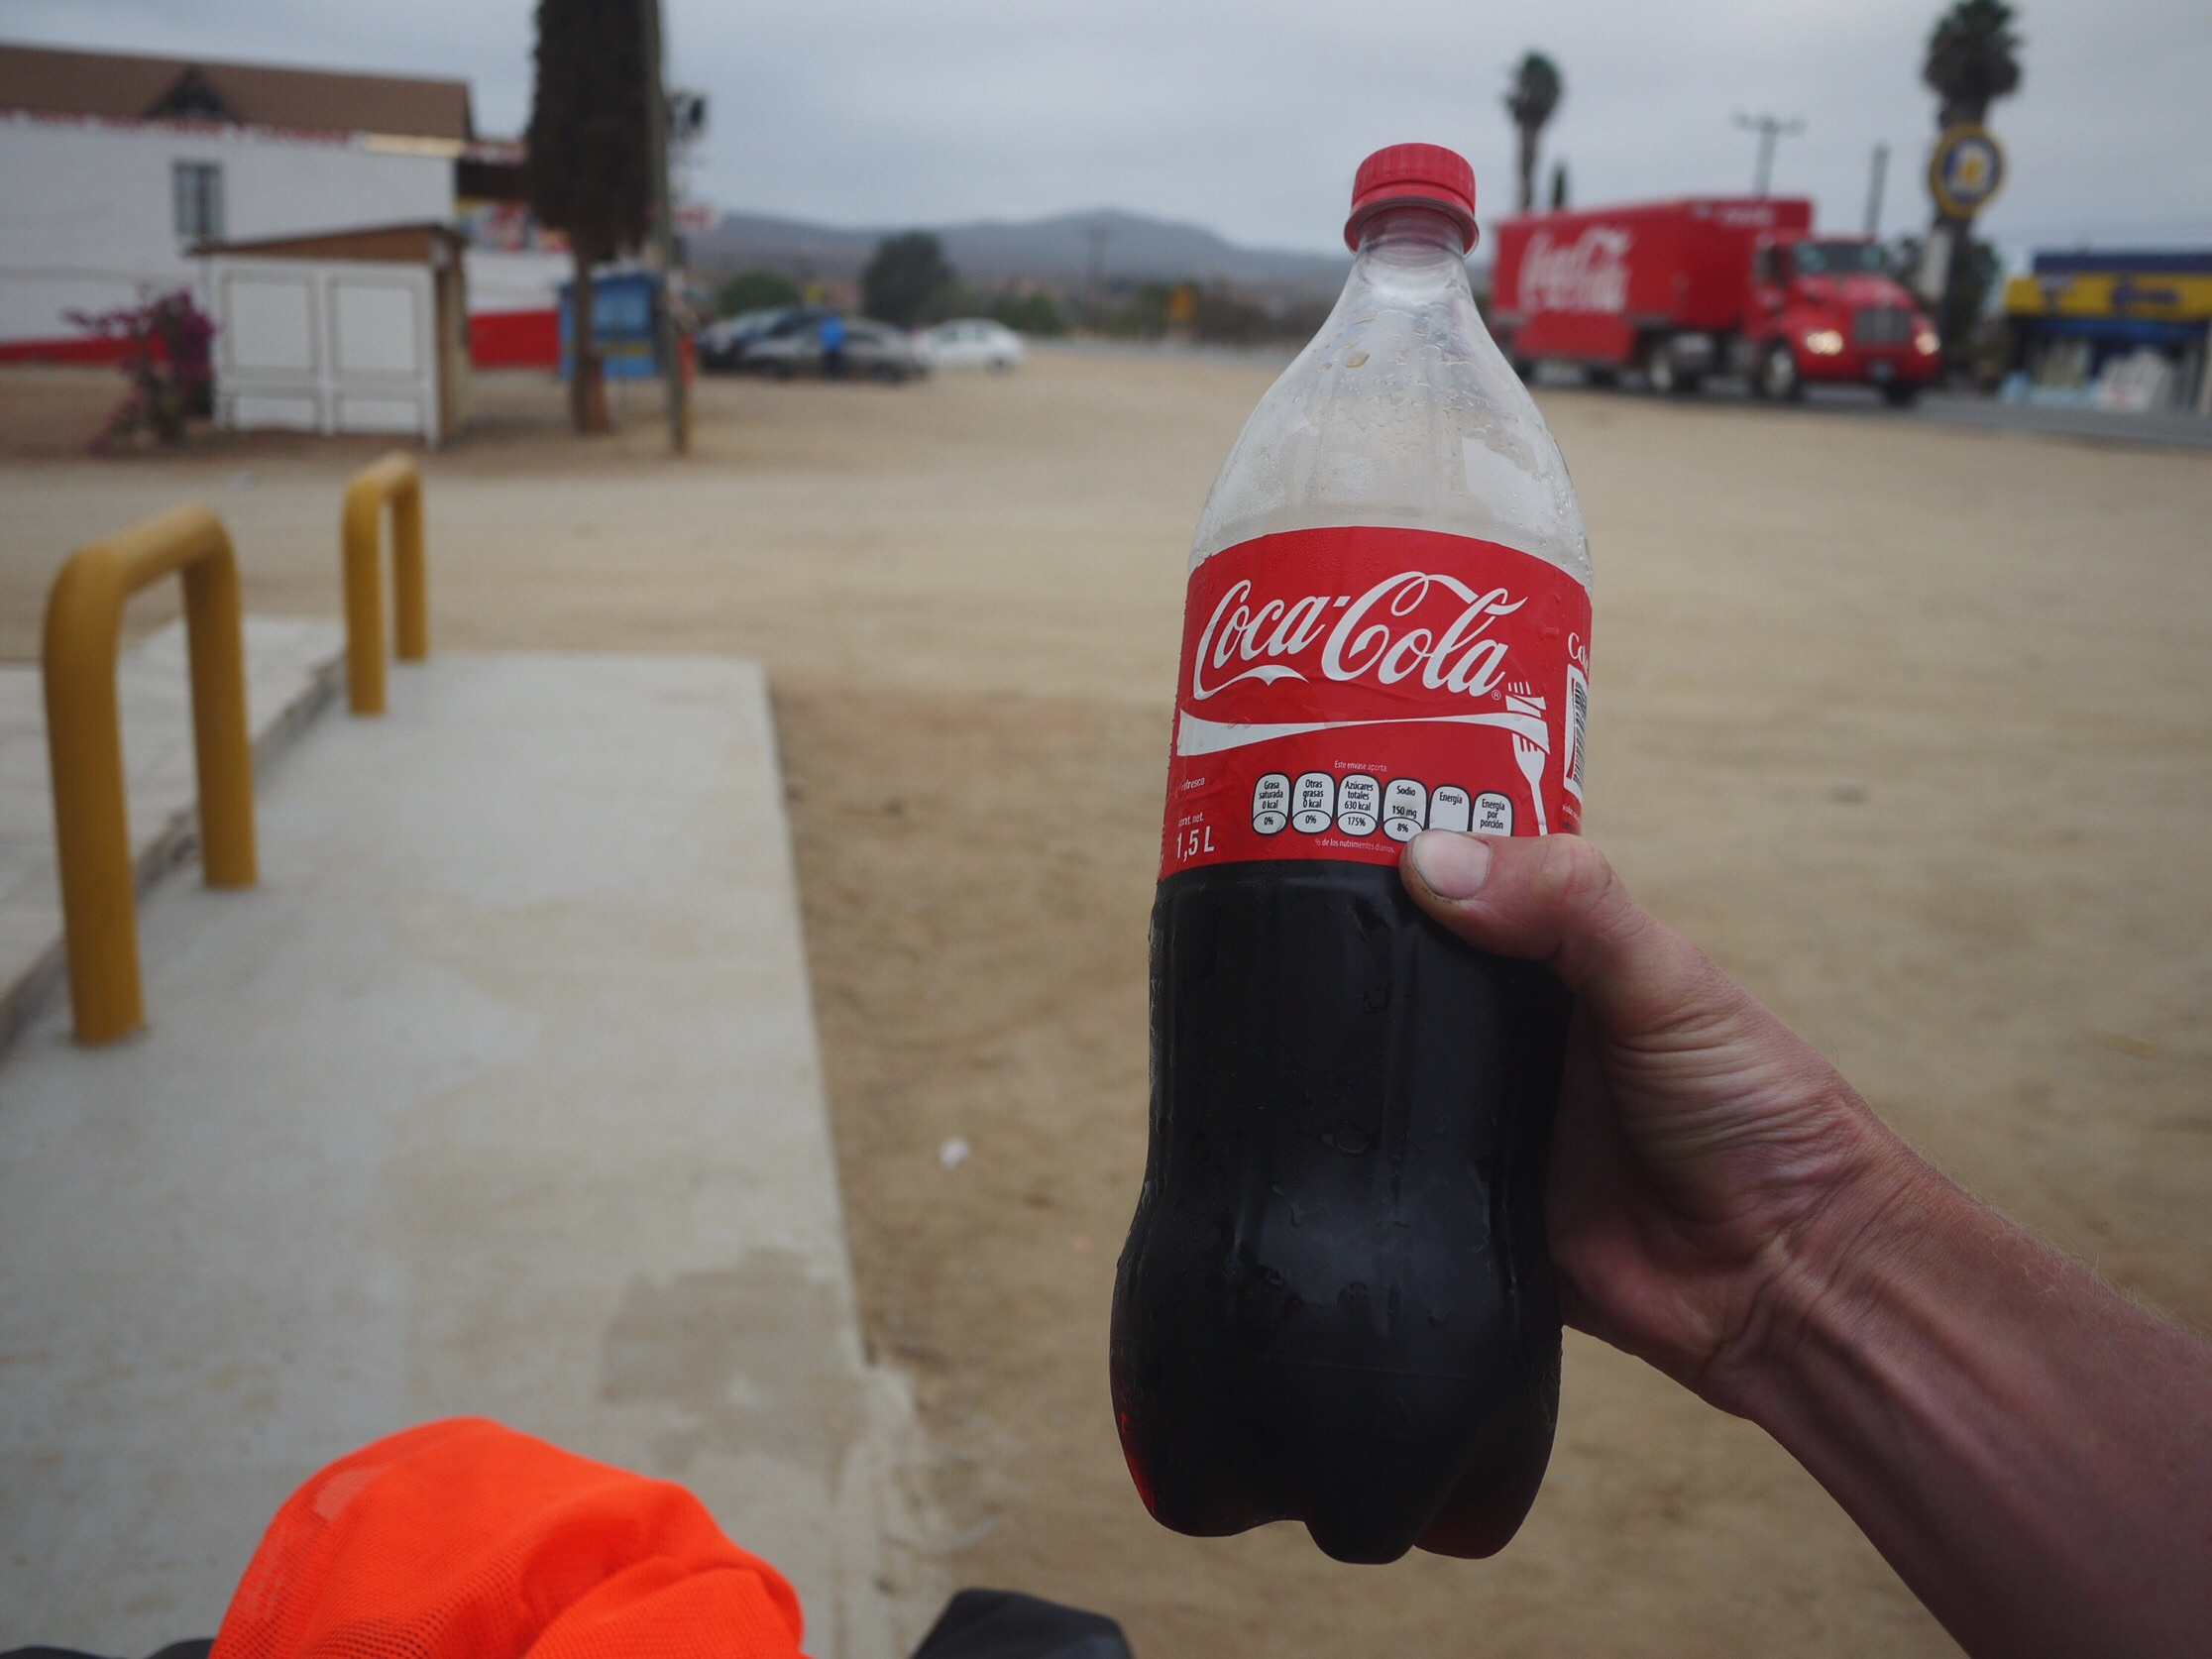 Moments before this moment, the Coca Cola truck in the background passed another semi taking up both of the oncoming lanes and leaving us pulling cactus thorns in the ditch. We both swore oaths to never touch the stuff again the rest of the way into town. Sun blasted and staring off into space outside the mercado a local man stuffed a 1.5 liter (!!) bottle into my hand, ignoring my protests as he gestured to his own 1.5 liter. Oath broken, near tears at his generosity and left to sift through the levels of irony for the remainder of the evening's ride.